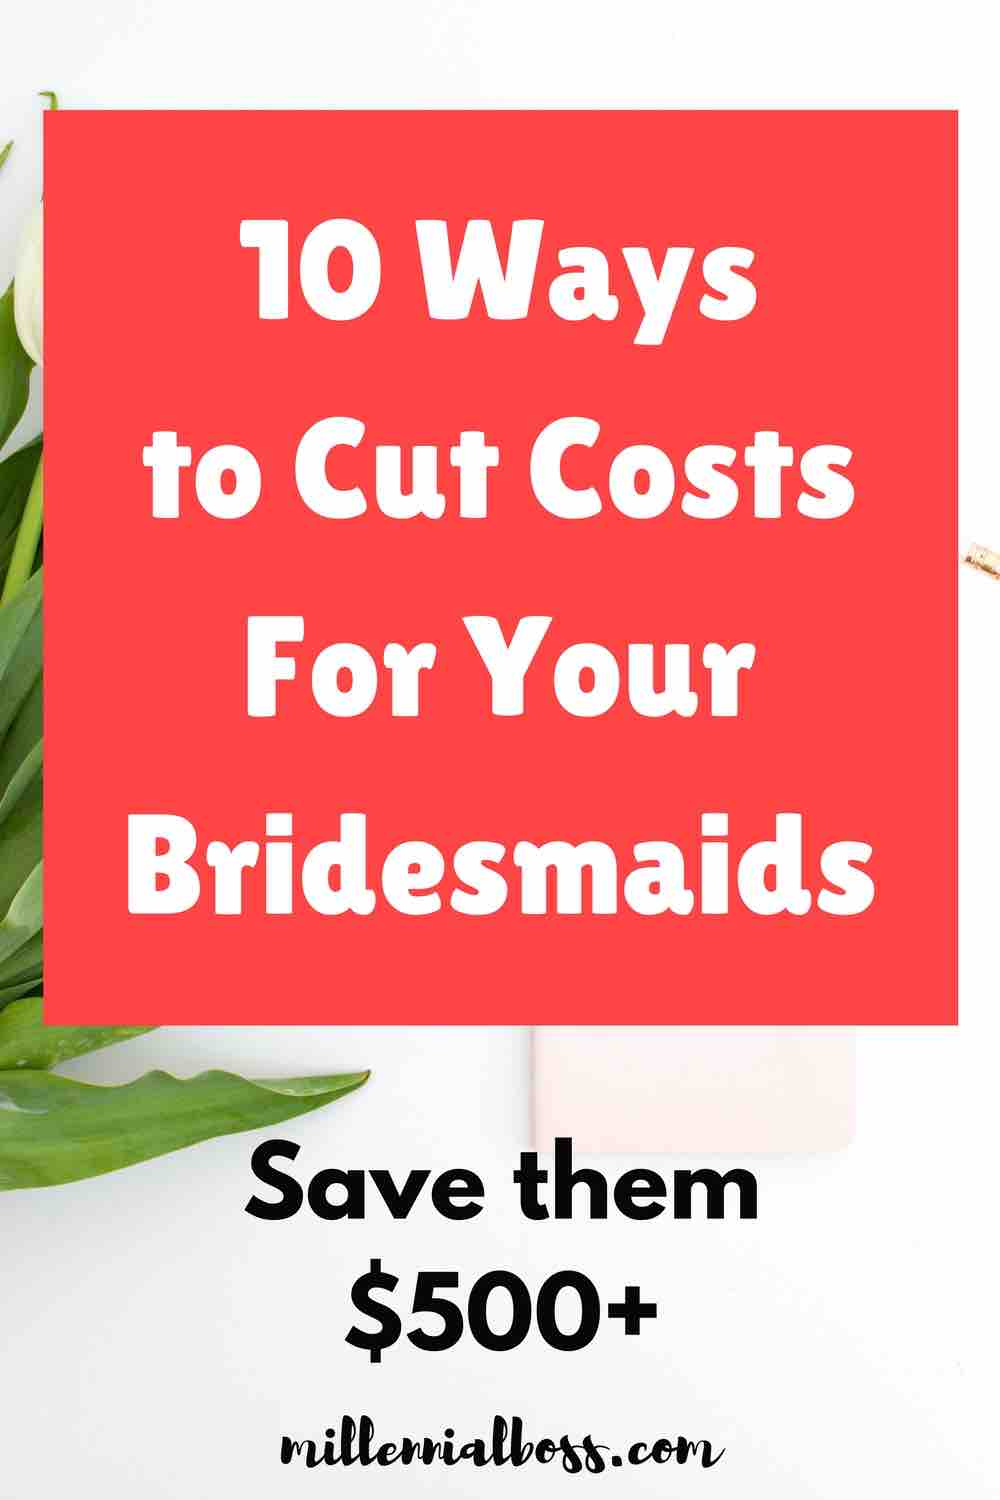 Finally! SUPER tips on how to save money on bridesmaids dresses, bridal party, etc! I needed this advice!